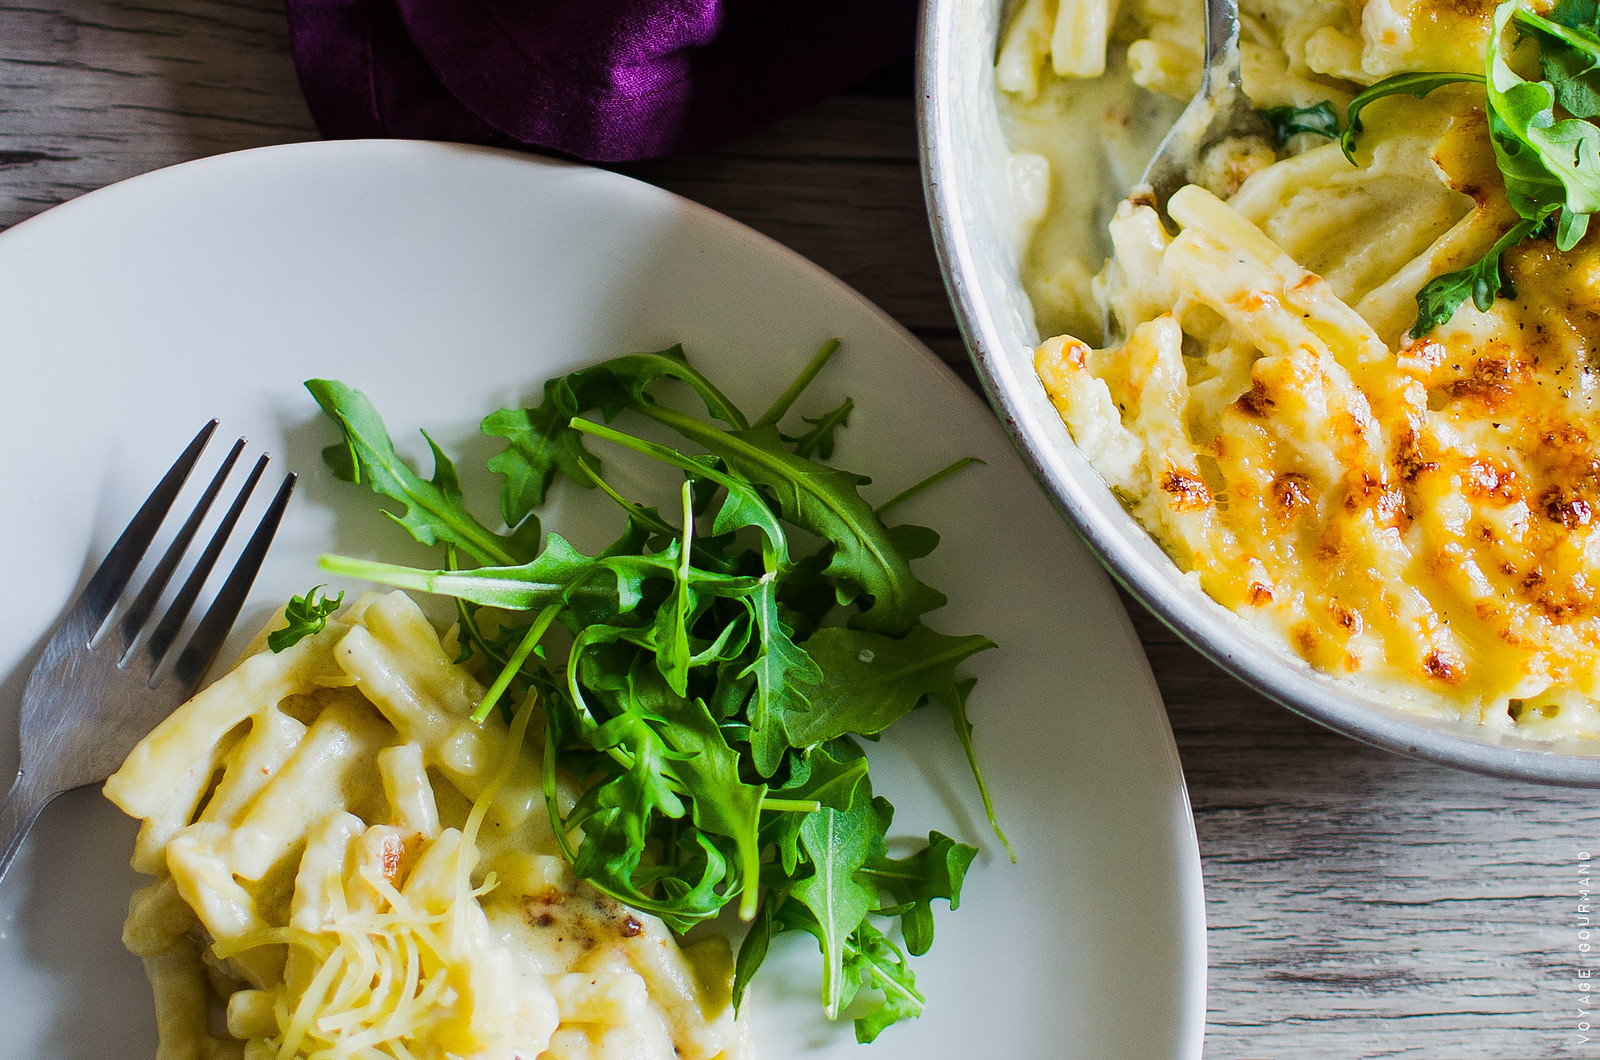 Mac & Cheese aux trois fromages